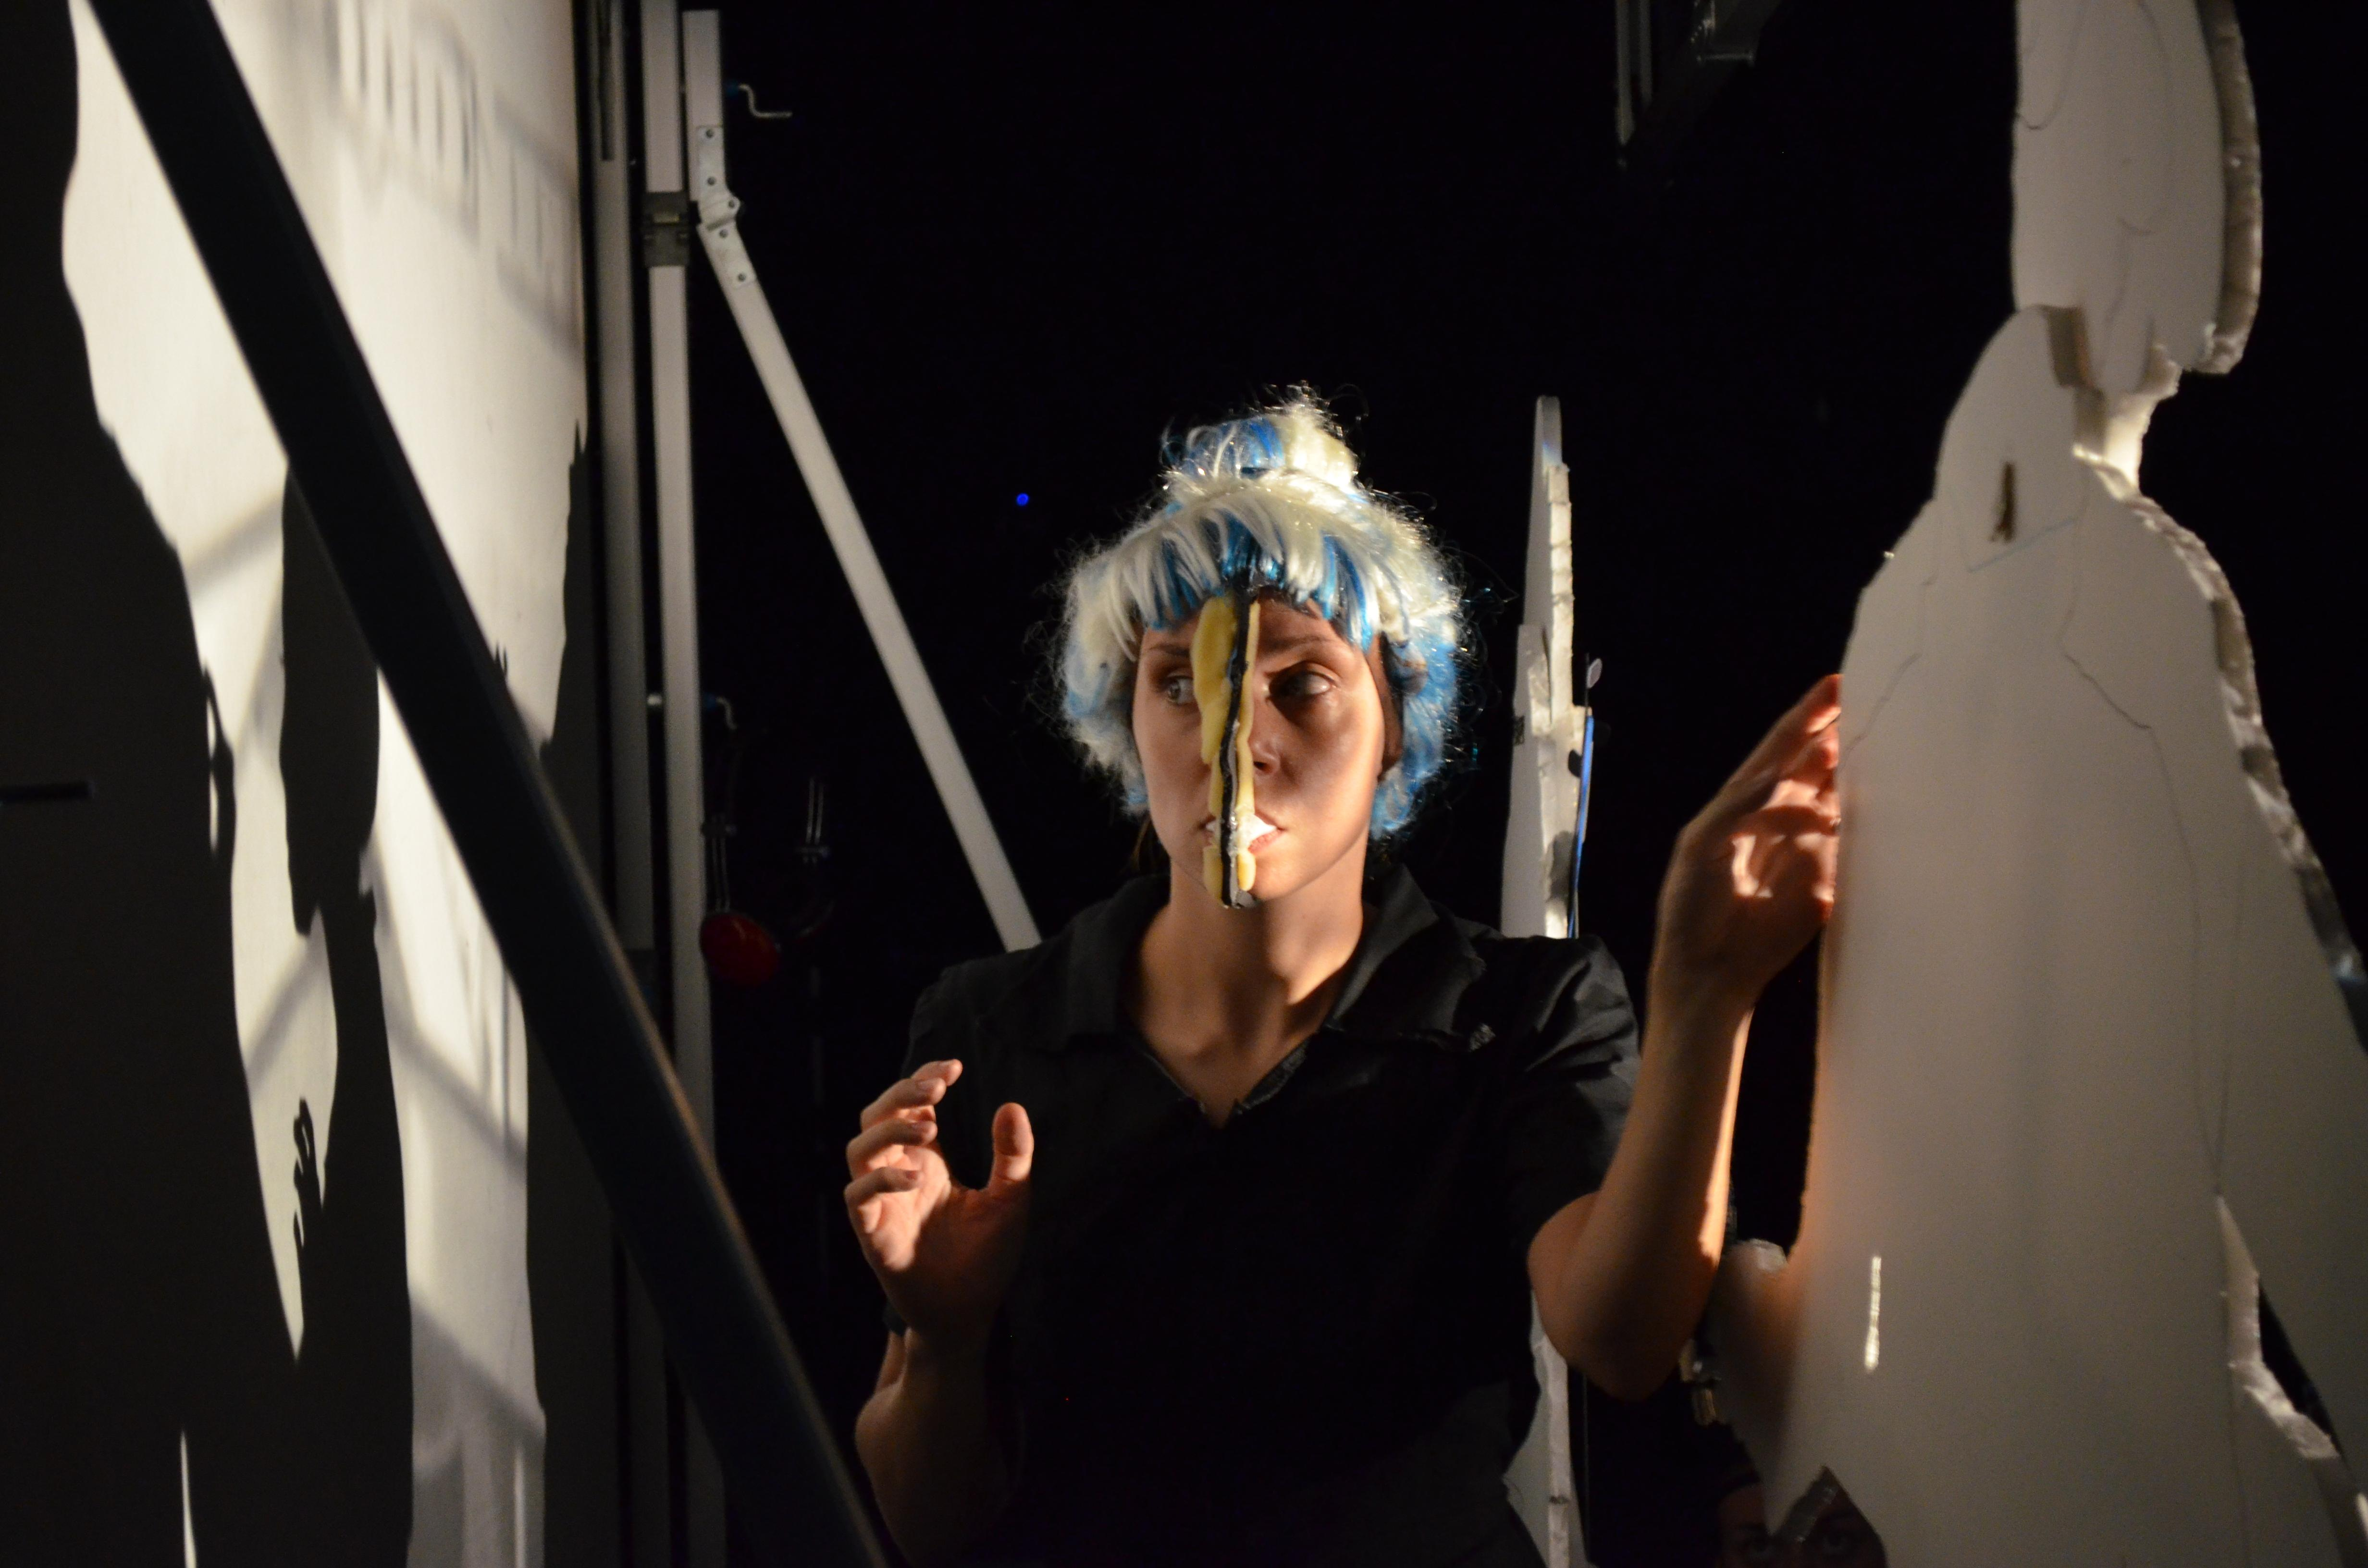 A woman wearing a white and blue wig holds part of a mask with her teeth and touches a cardboard cut-out with her left hand, casting a shadow on a screen to her right.